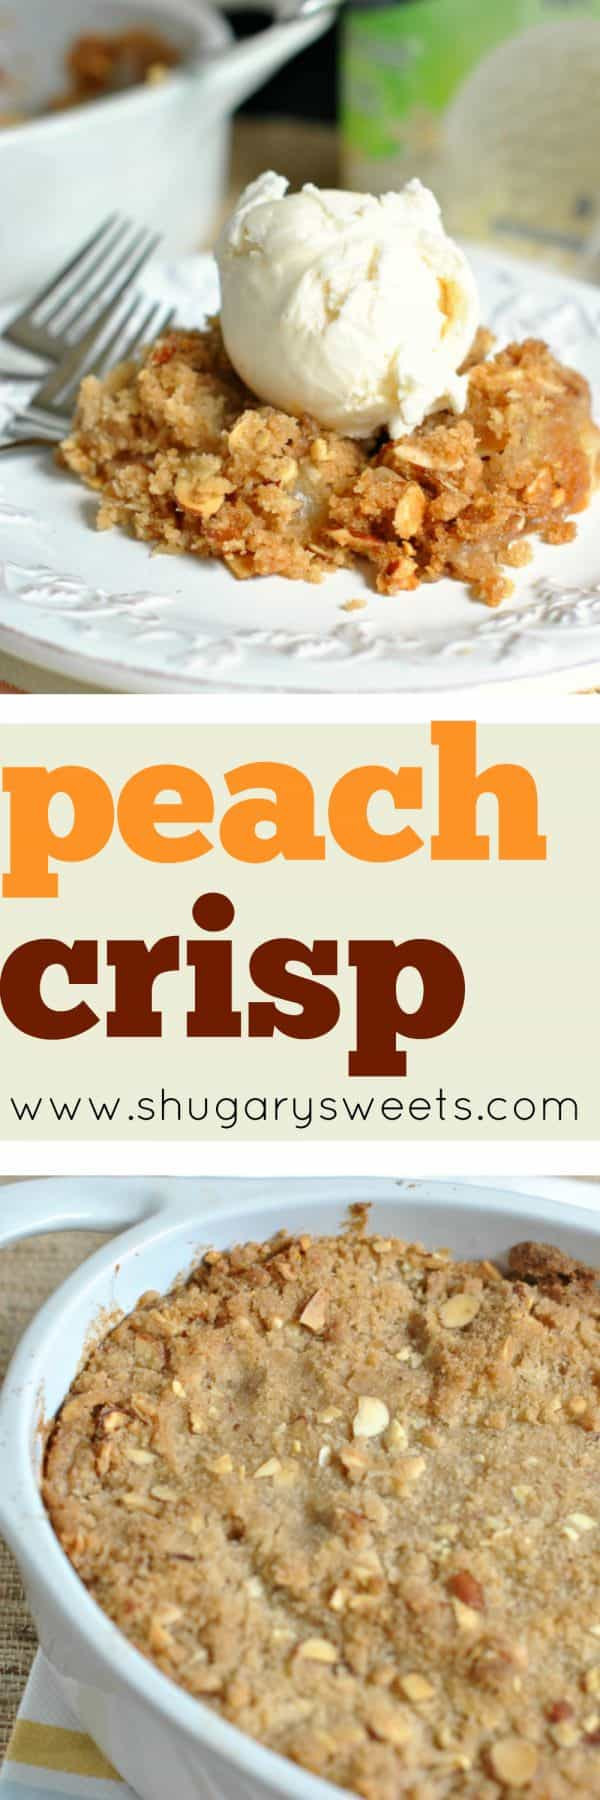 Delicious homemade Peach Crisp topped with Breyers Gluten Free Vanilla. Fresh sweet peaches with the crumbly topping make this mouthwatering dish perfect. The ice cream melting on the warm crisp only adds to that perfection!